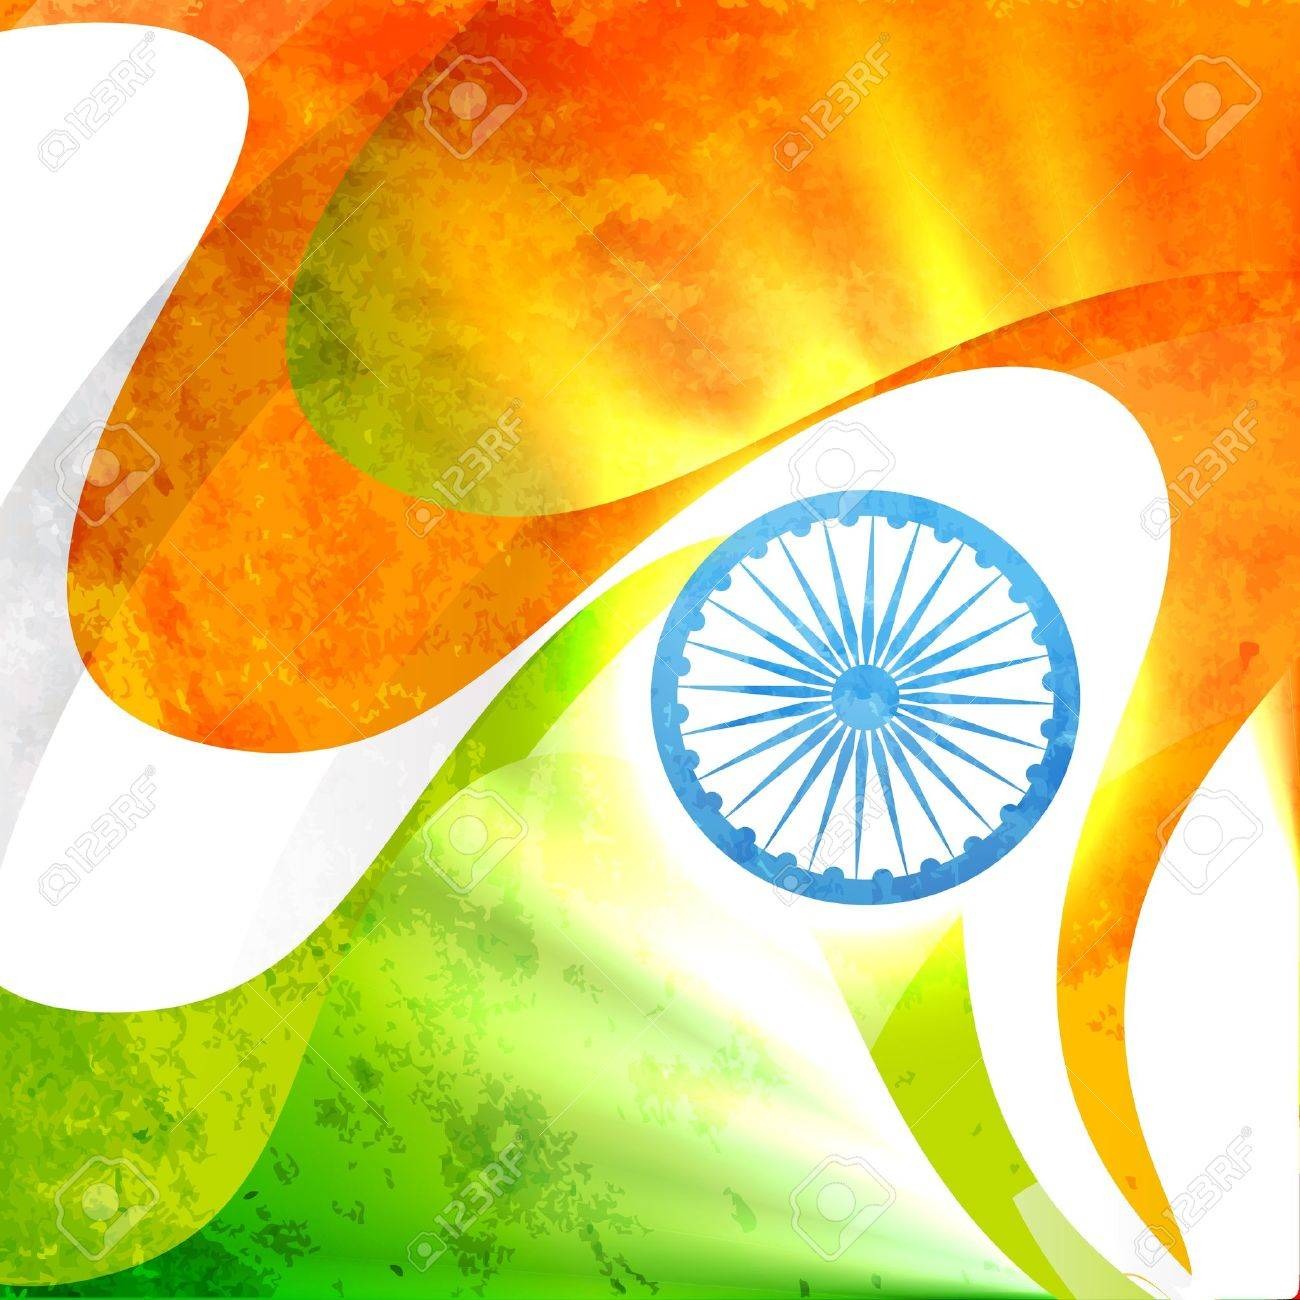 indian flag in grunge style vector background Stock Vector - 14693210